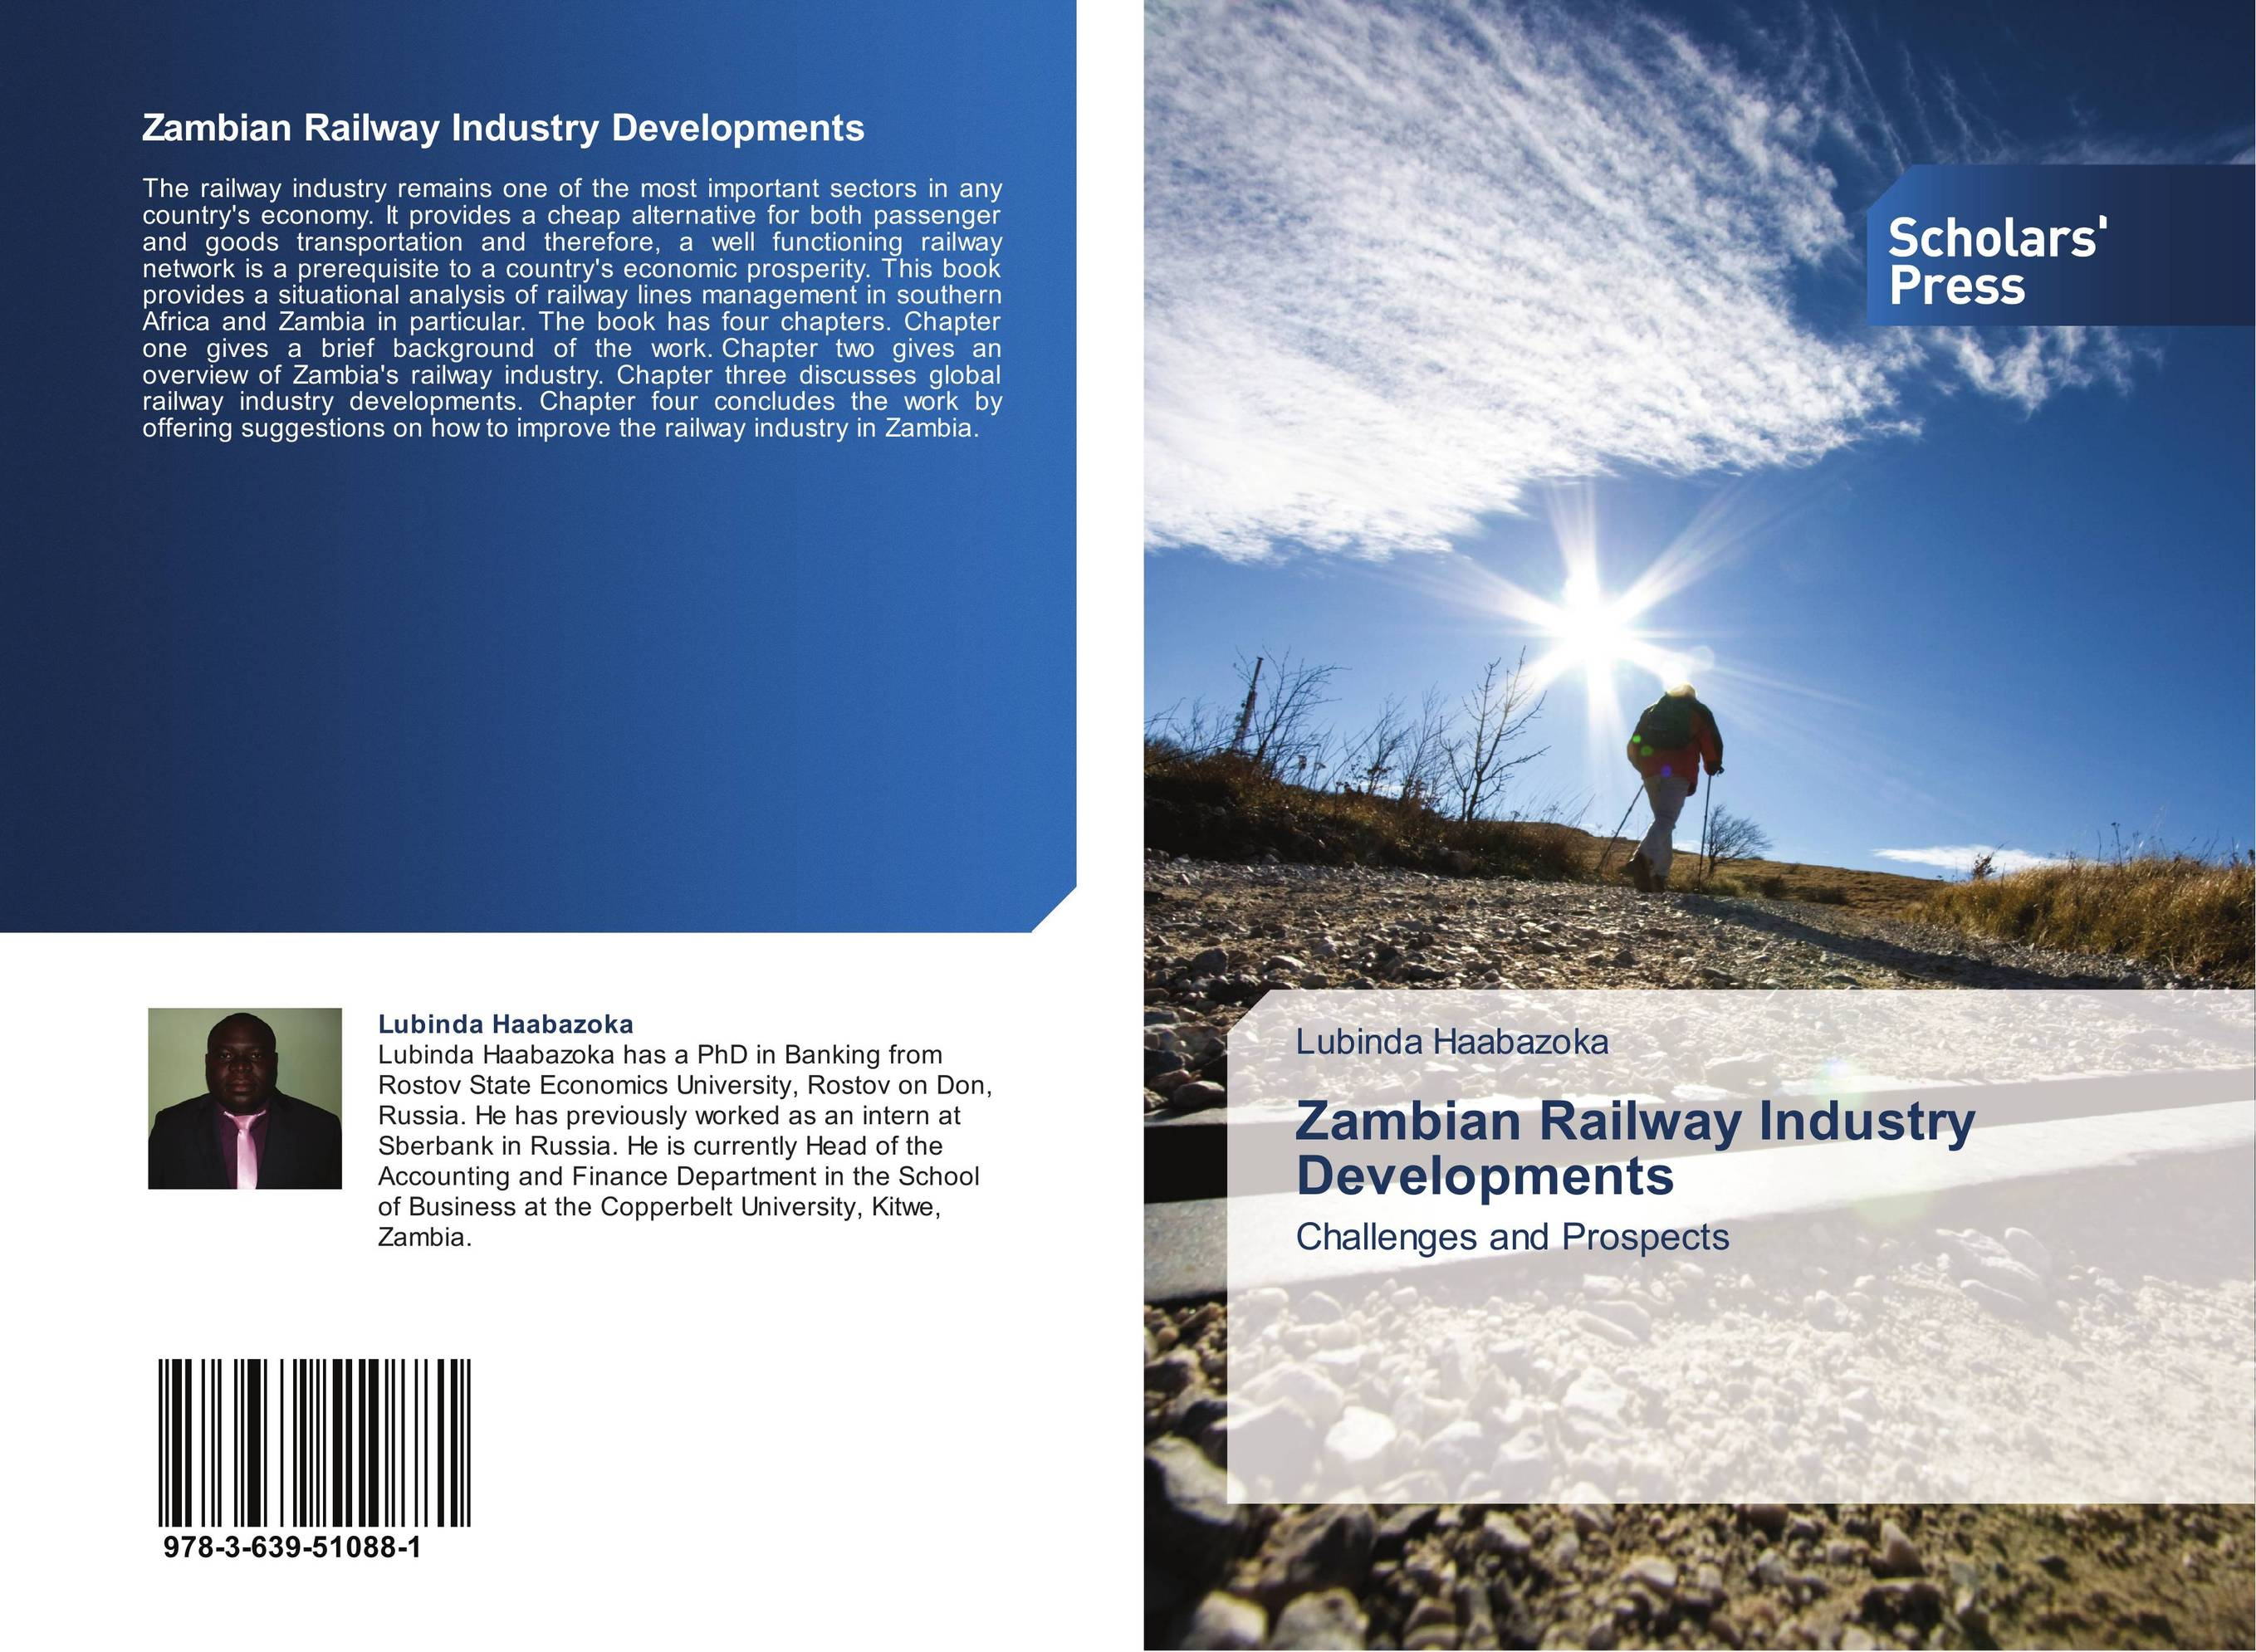 Zambian Railway Industry Developments